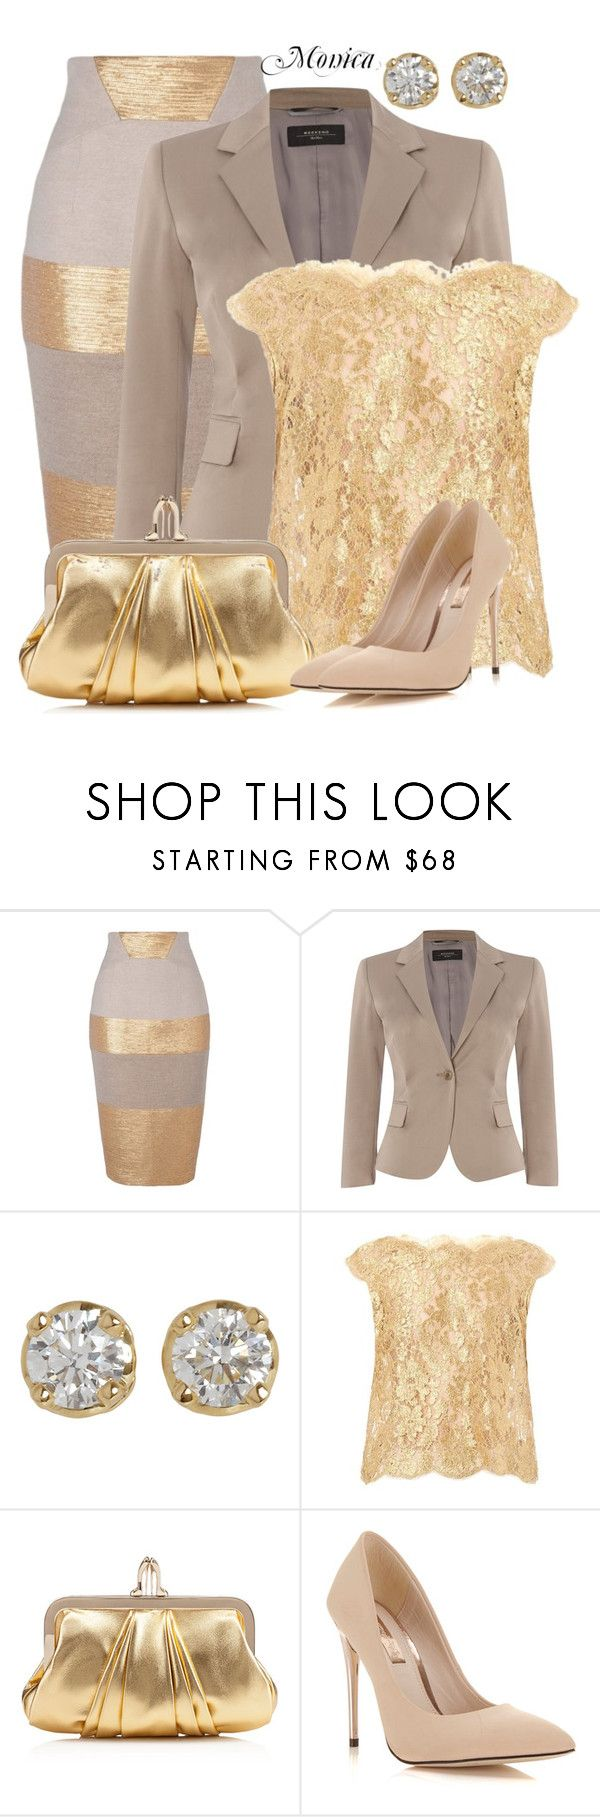 """Untitled #657"" by radi-monika ❤ liked on Polyvore featuring Amanda Wakeley, Weekend Max Mara, Hoorsenbuhs, Dolce&Gabbana, Christian Louboutin and Miss Selfridge"